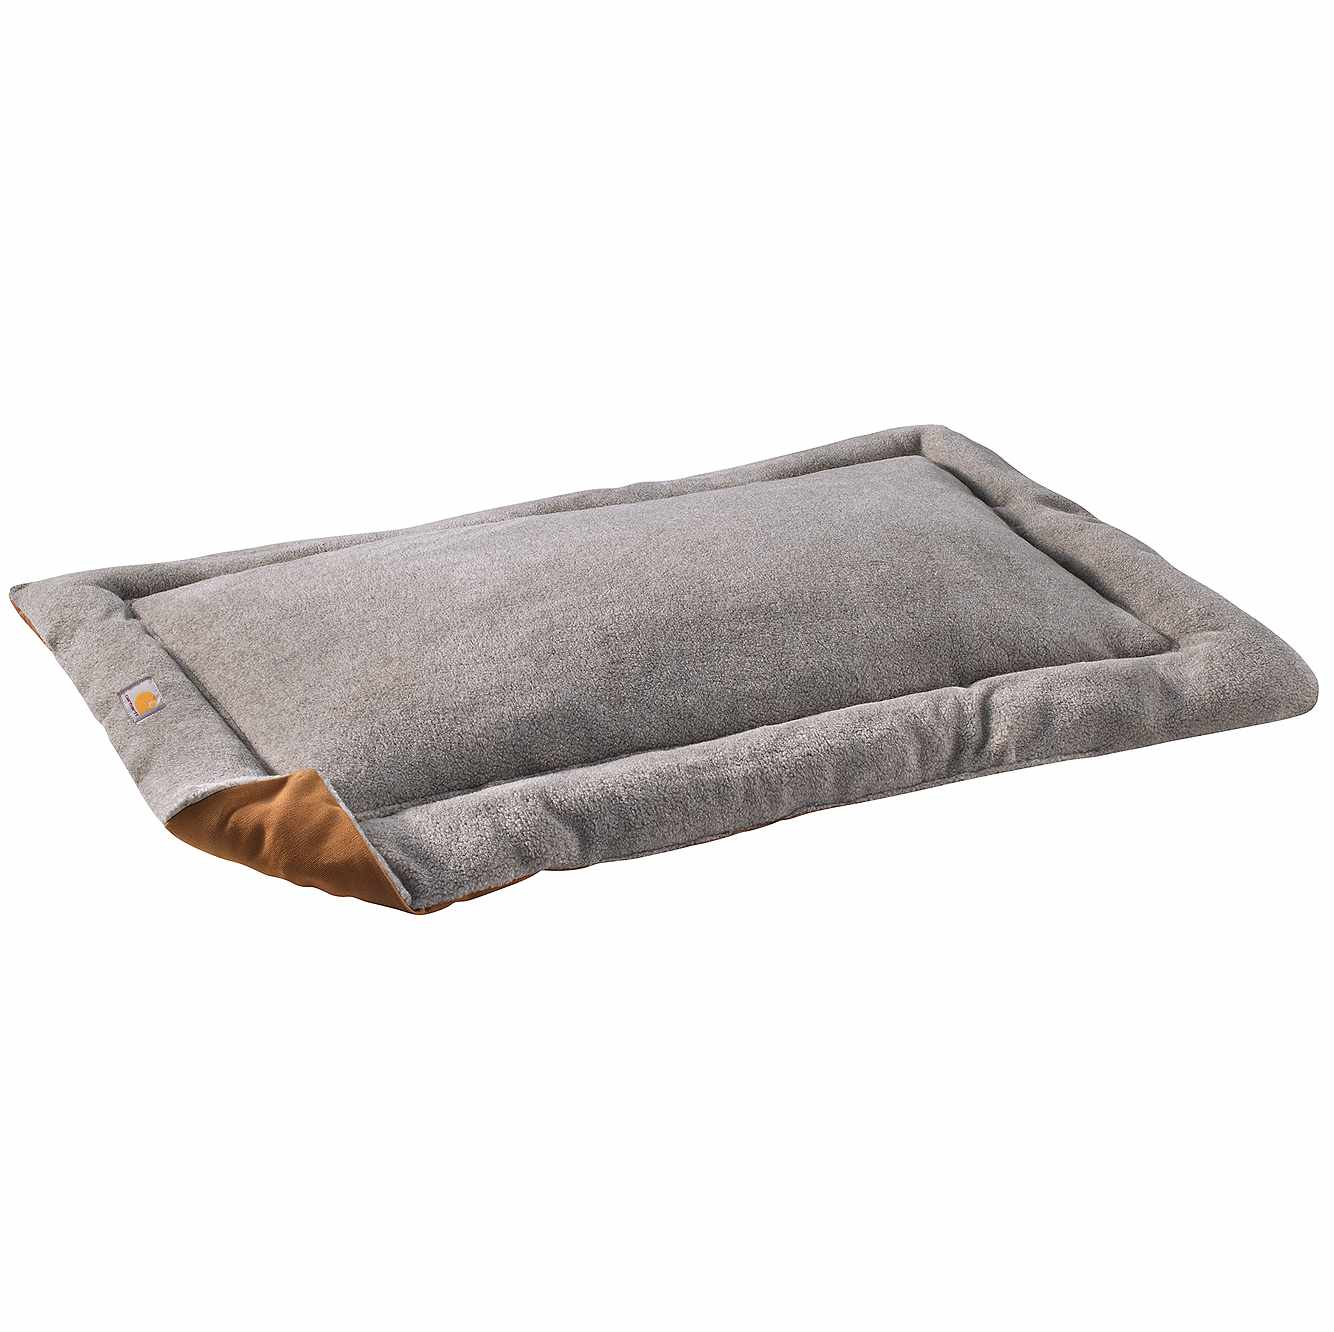 Picture of Napper Pad in Carhartt Brown